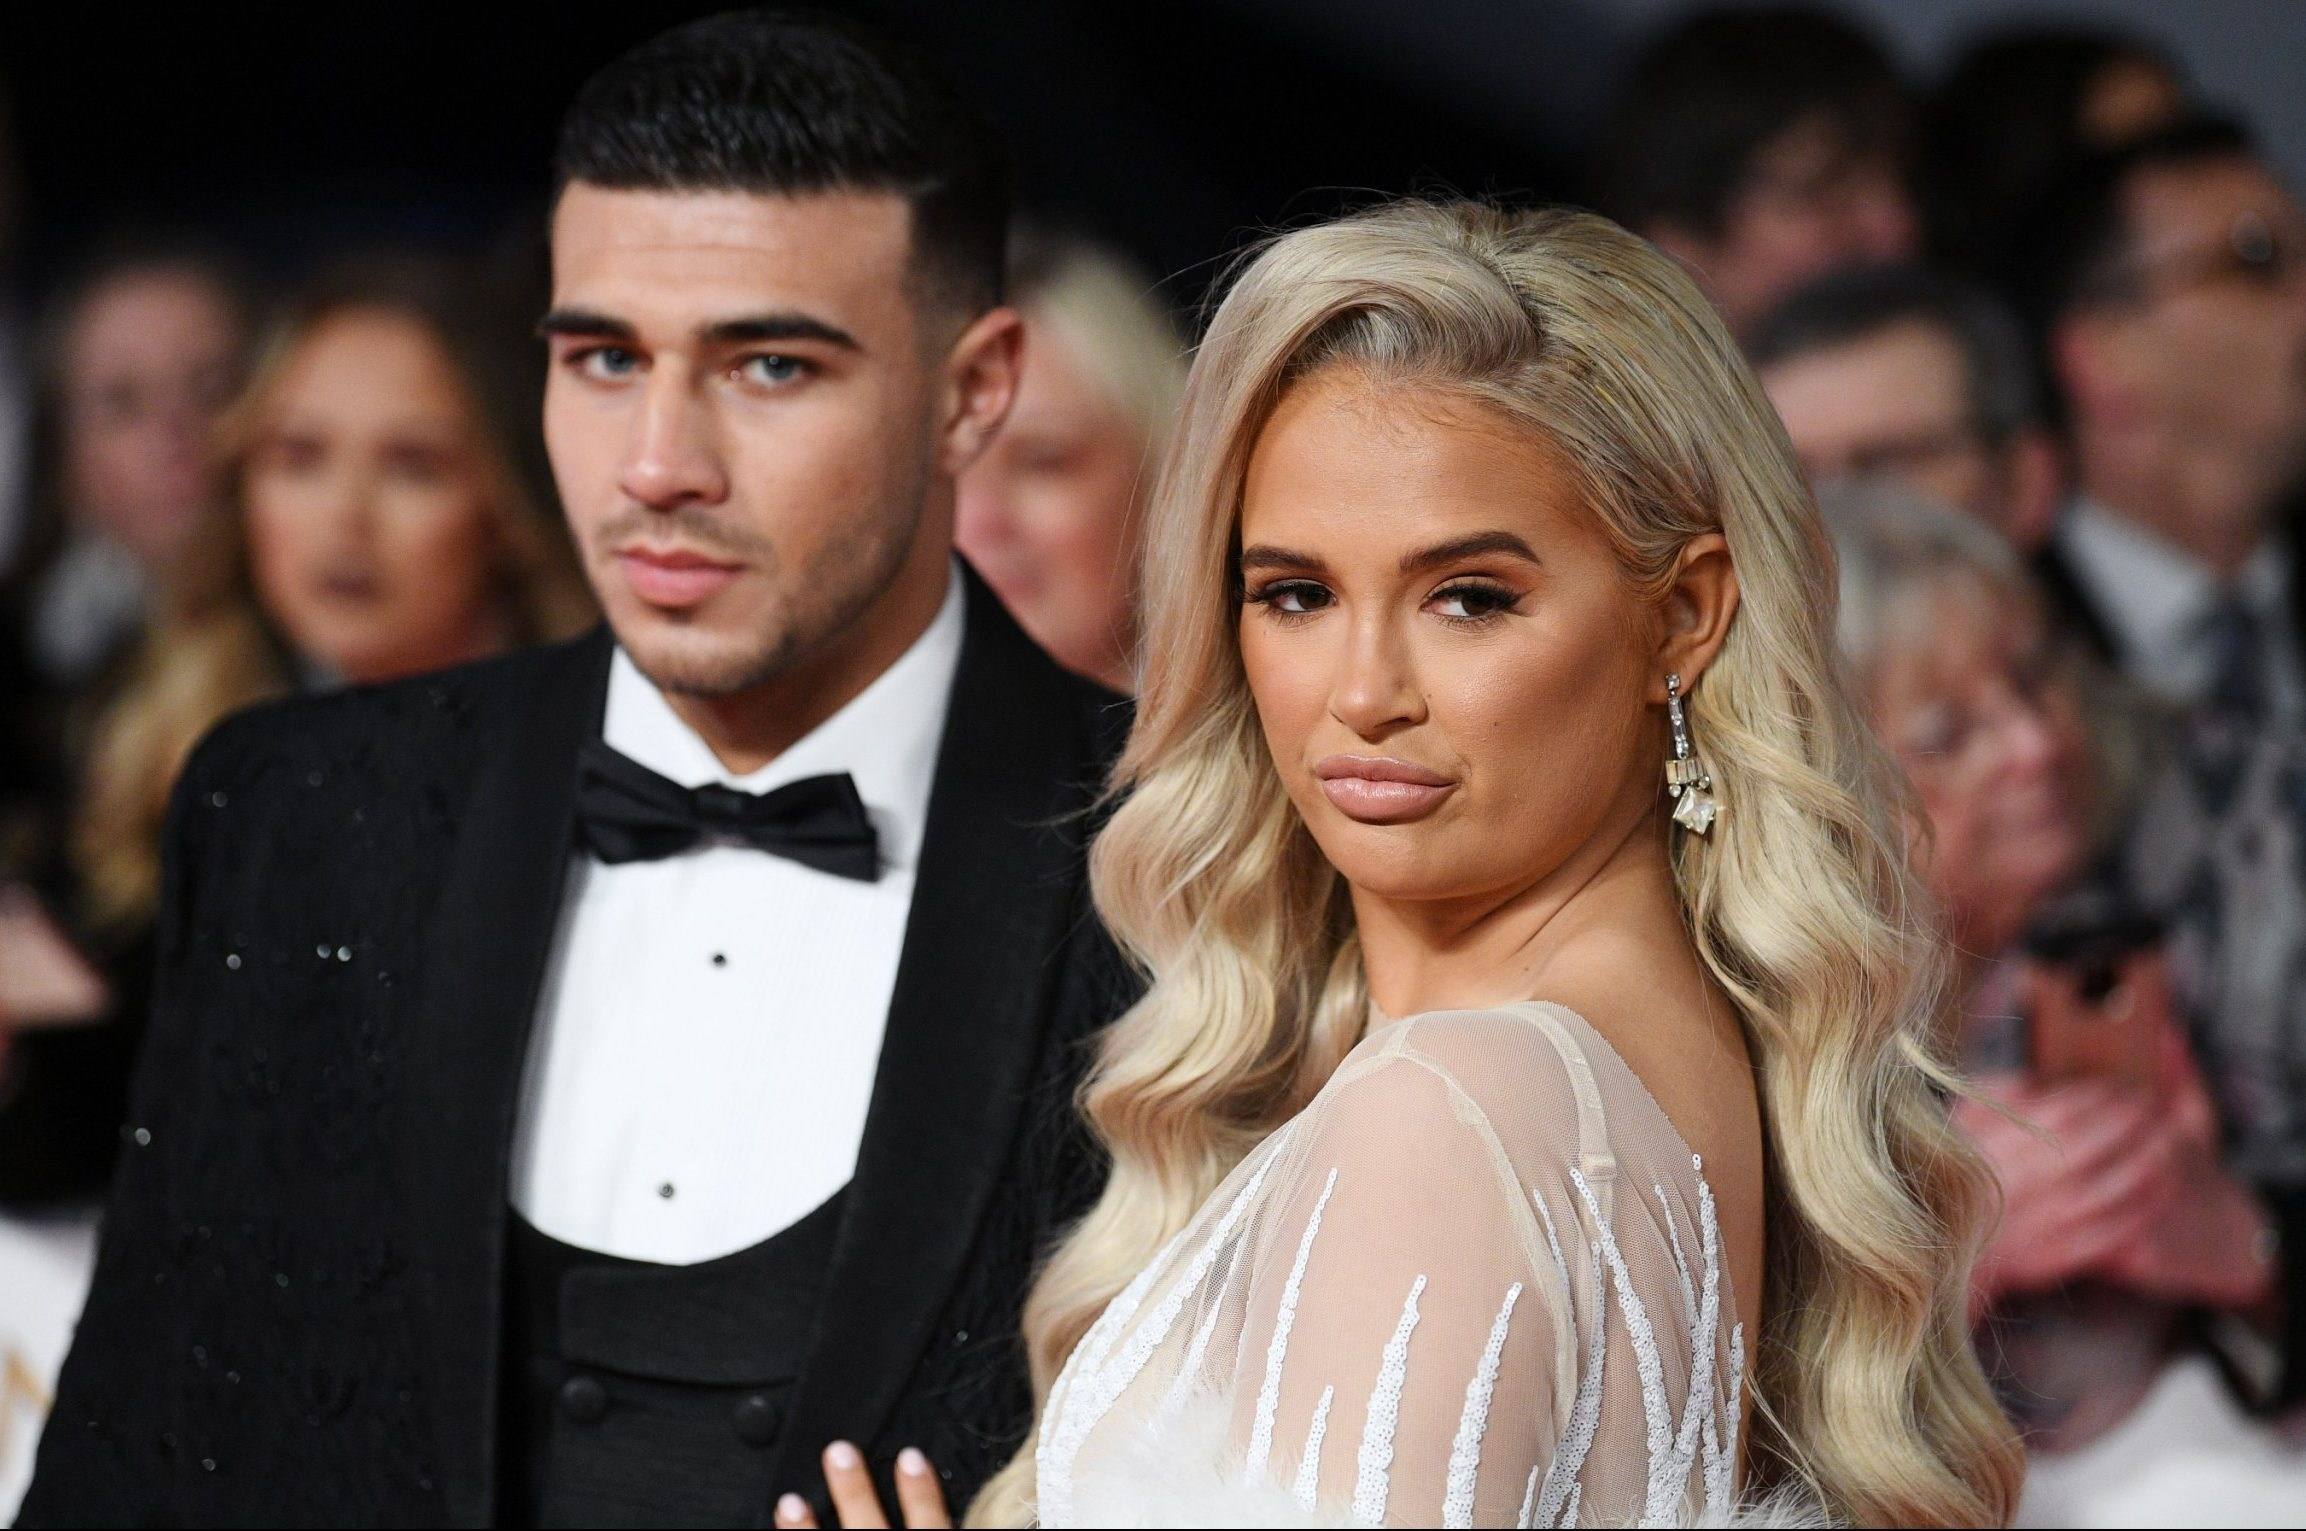 Love Island's Molly-Mae Hague and Tommy Fury 'flout lockdown rules with Manchester move'